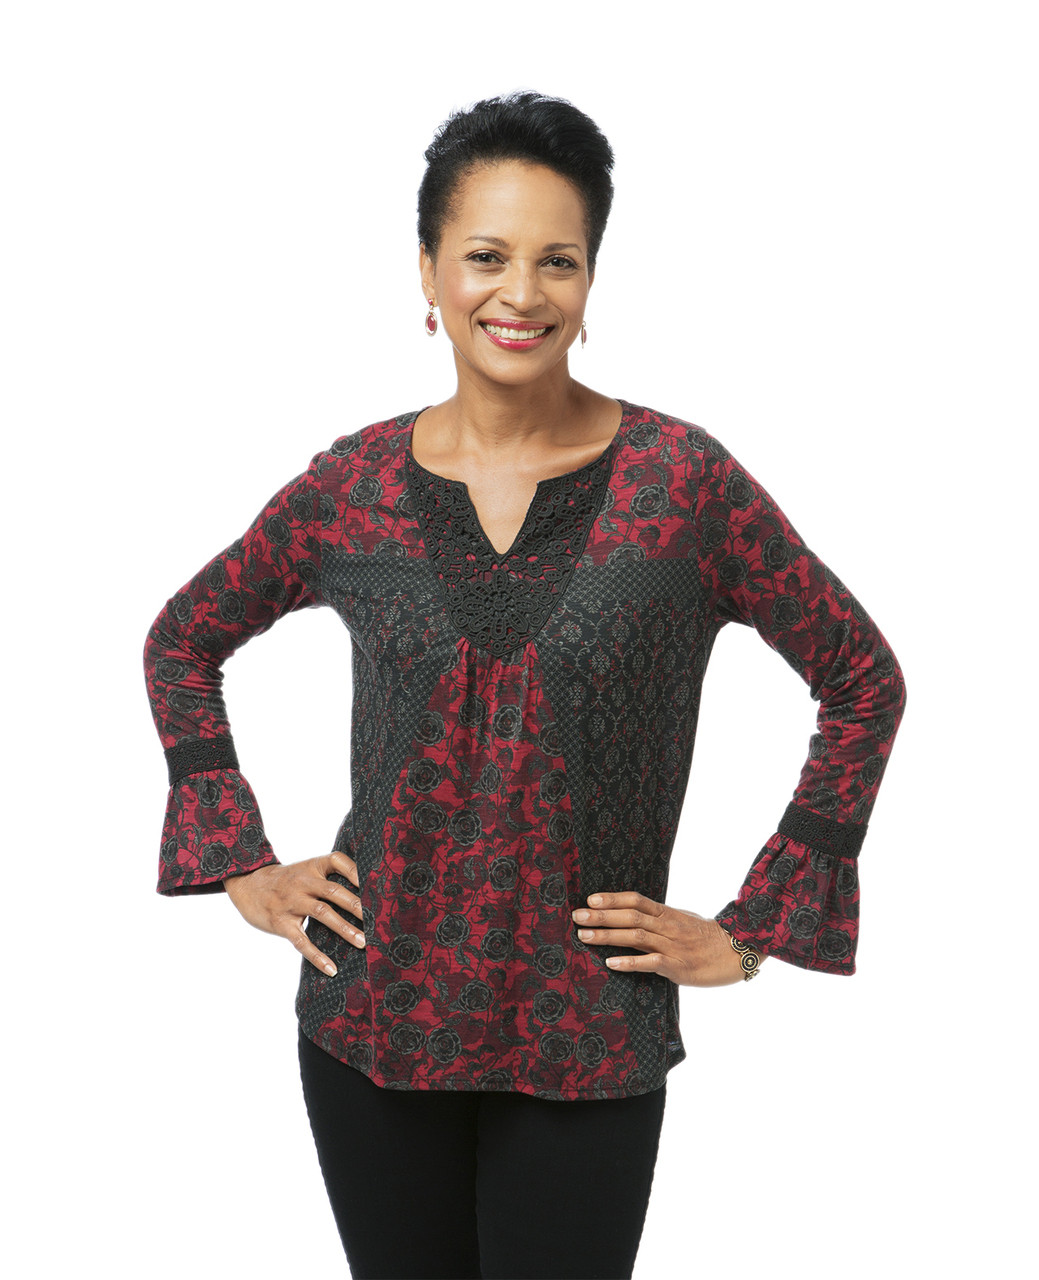 aeb3d045 Black & Red Bell Sleeve Lace Top for Women   Northern Reflections